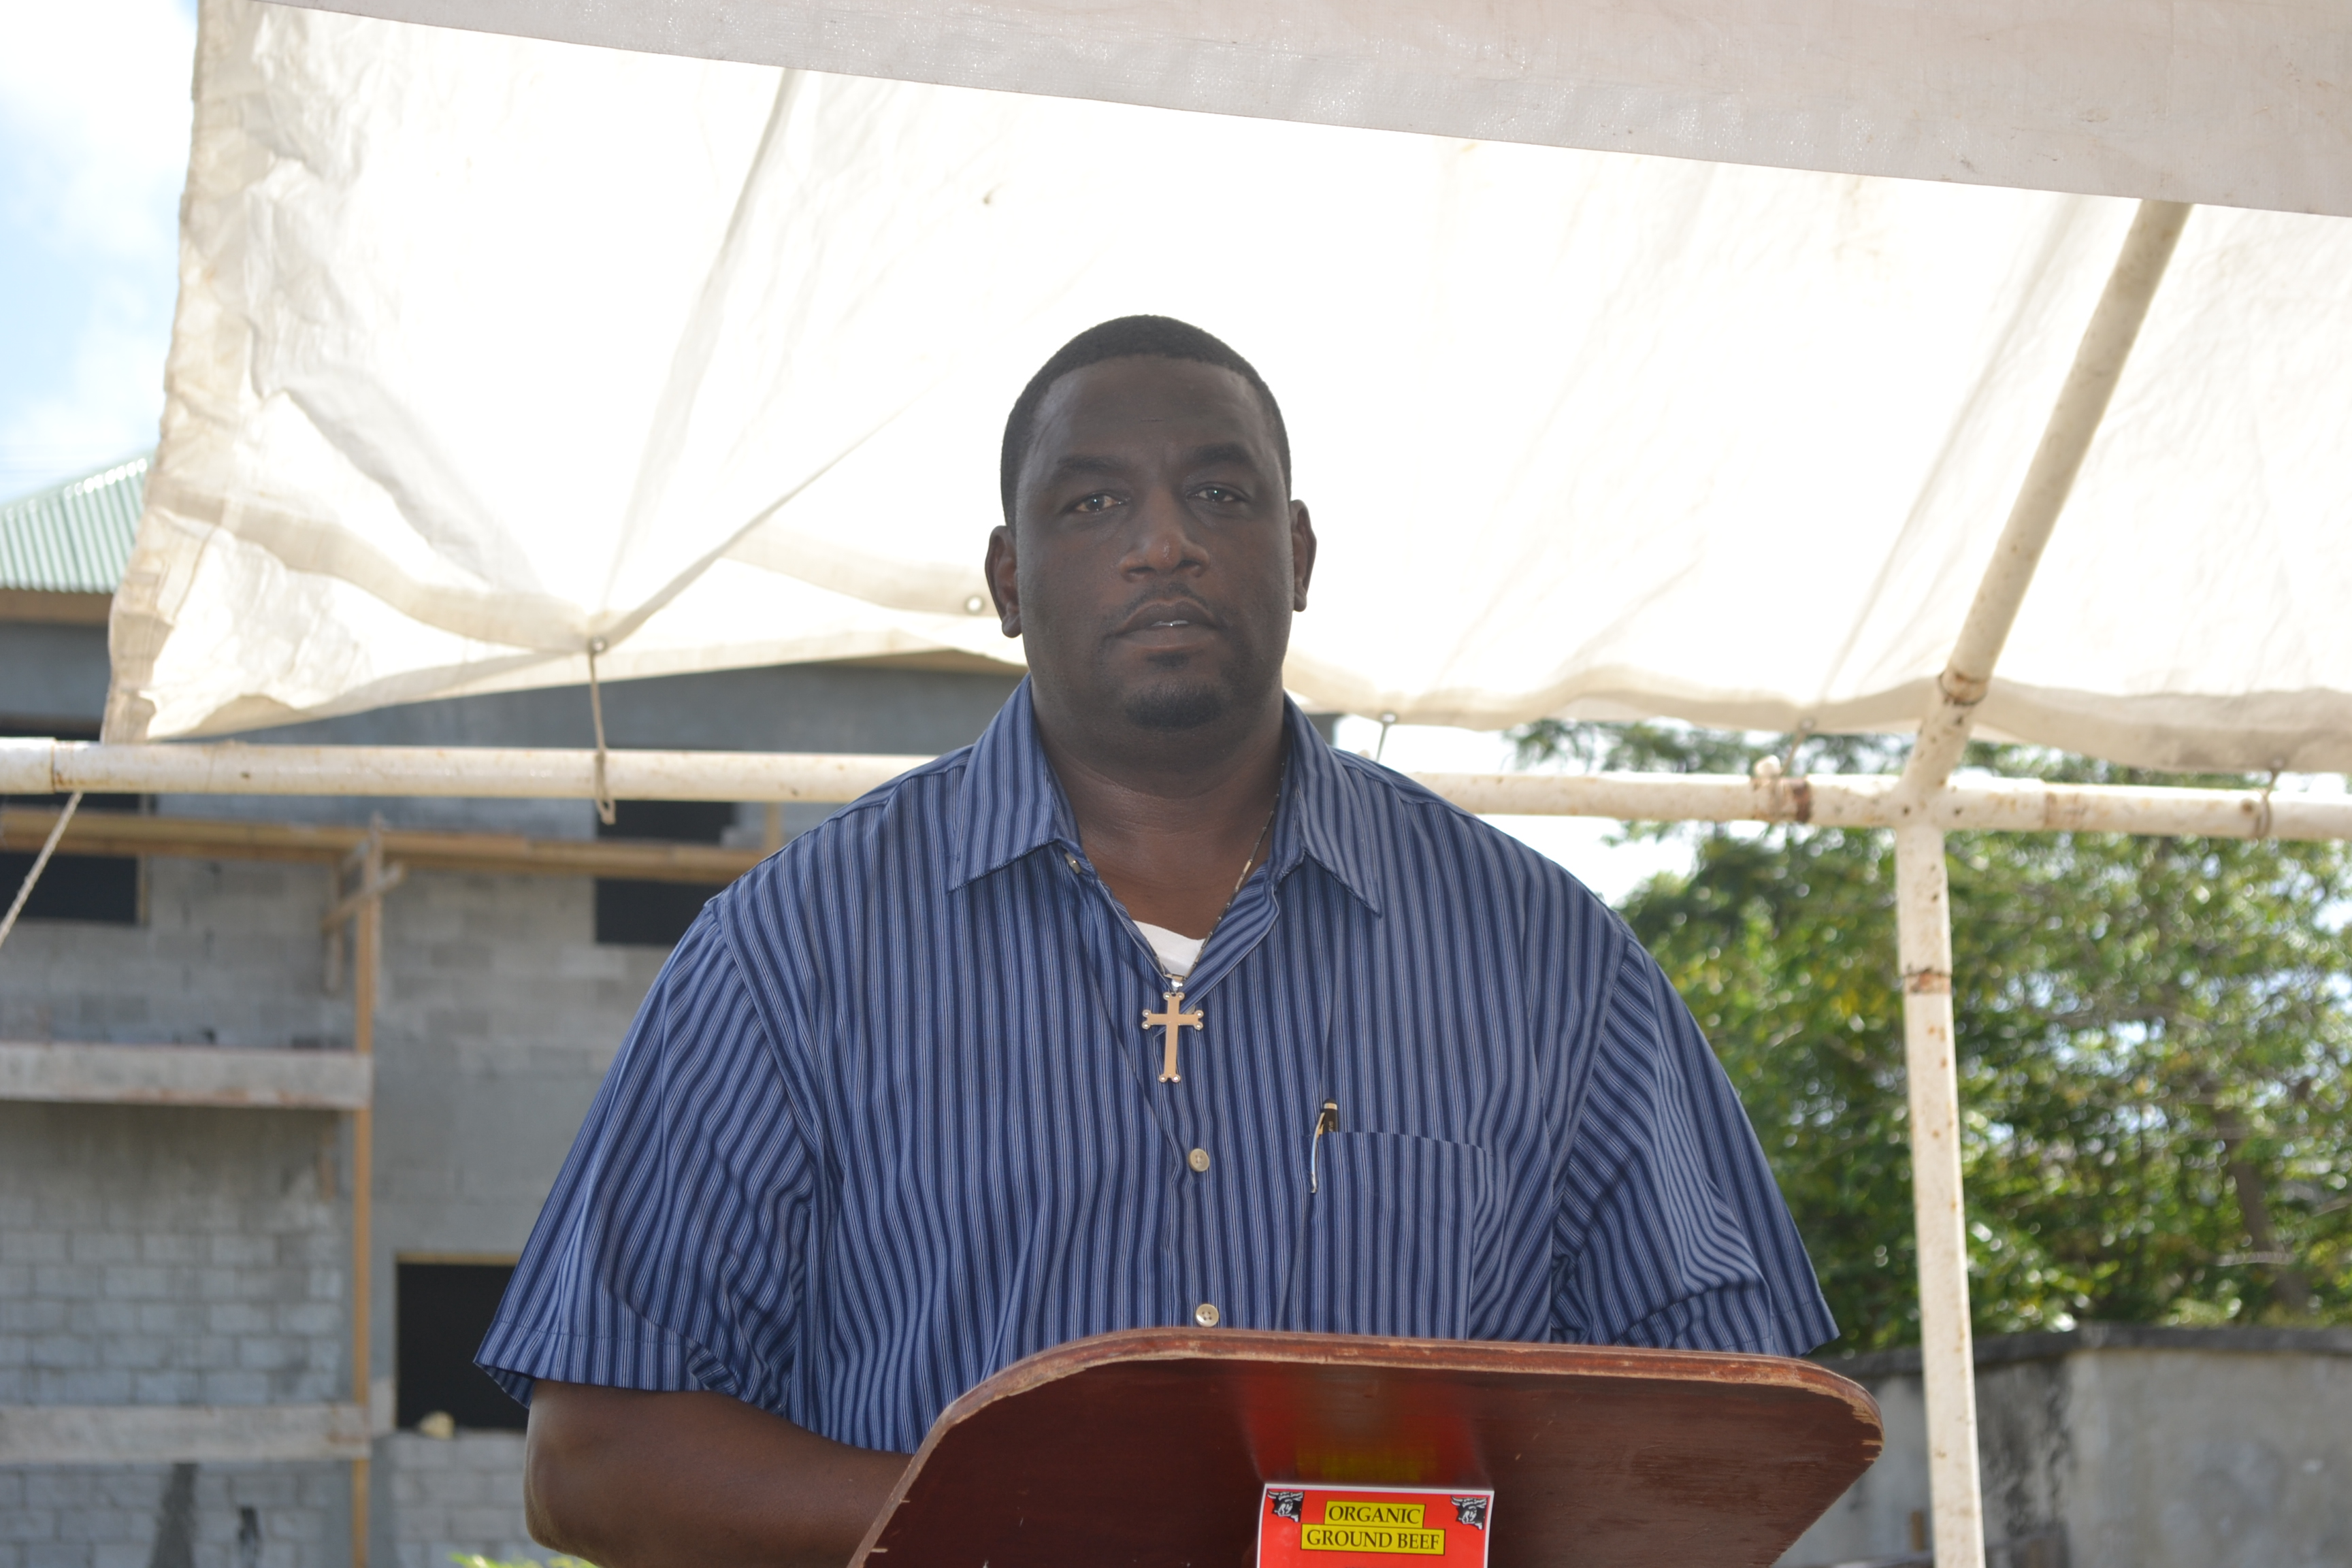 Manager of the Abattoir Mr. Garfield Griffin making remarks at the Ground Breaking Ceremony for the extension of the Abattoir Division on the Abattoir Division Grounds on January 26 2016